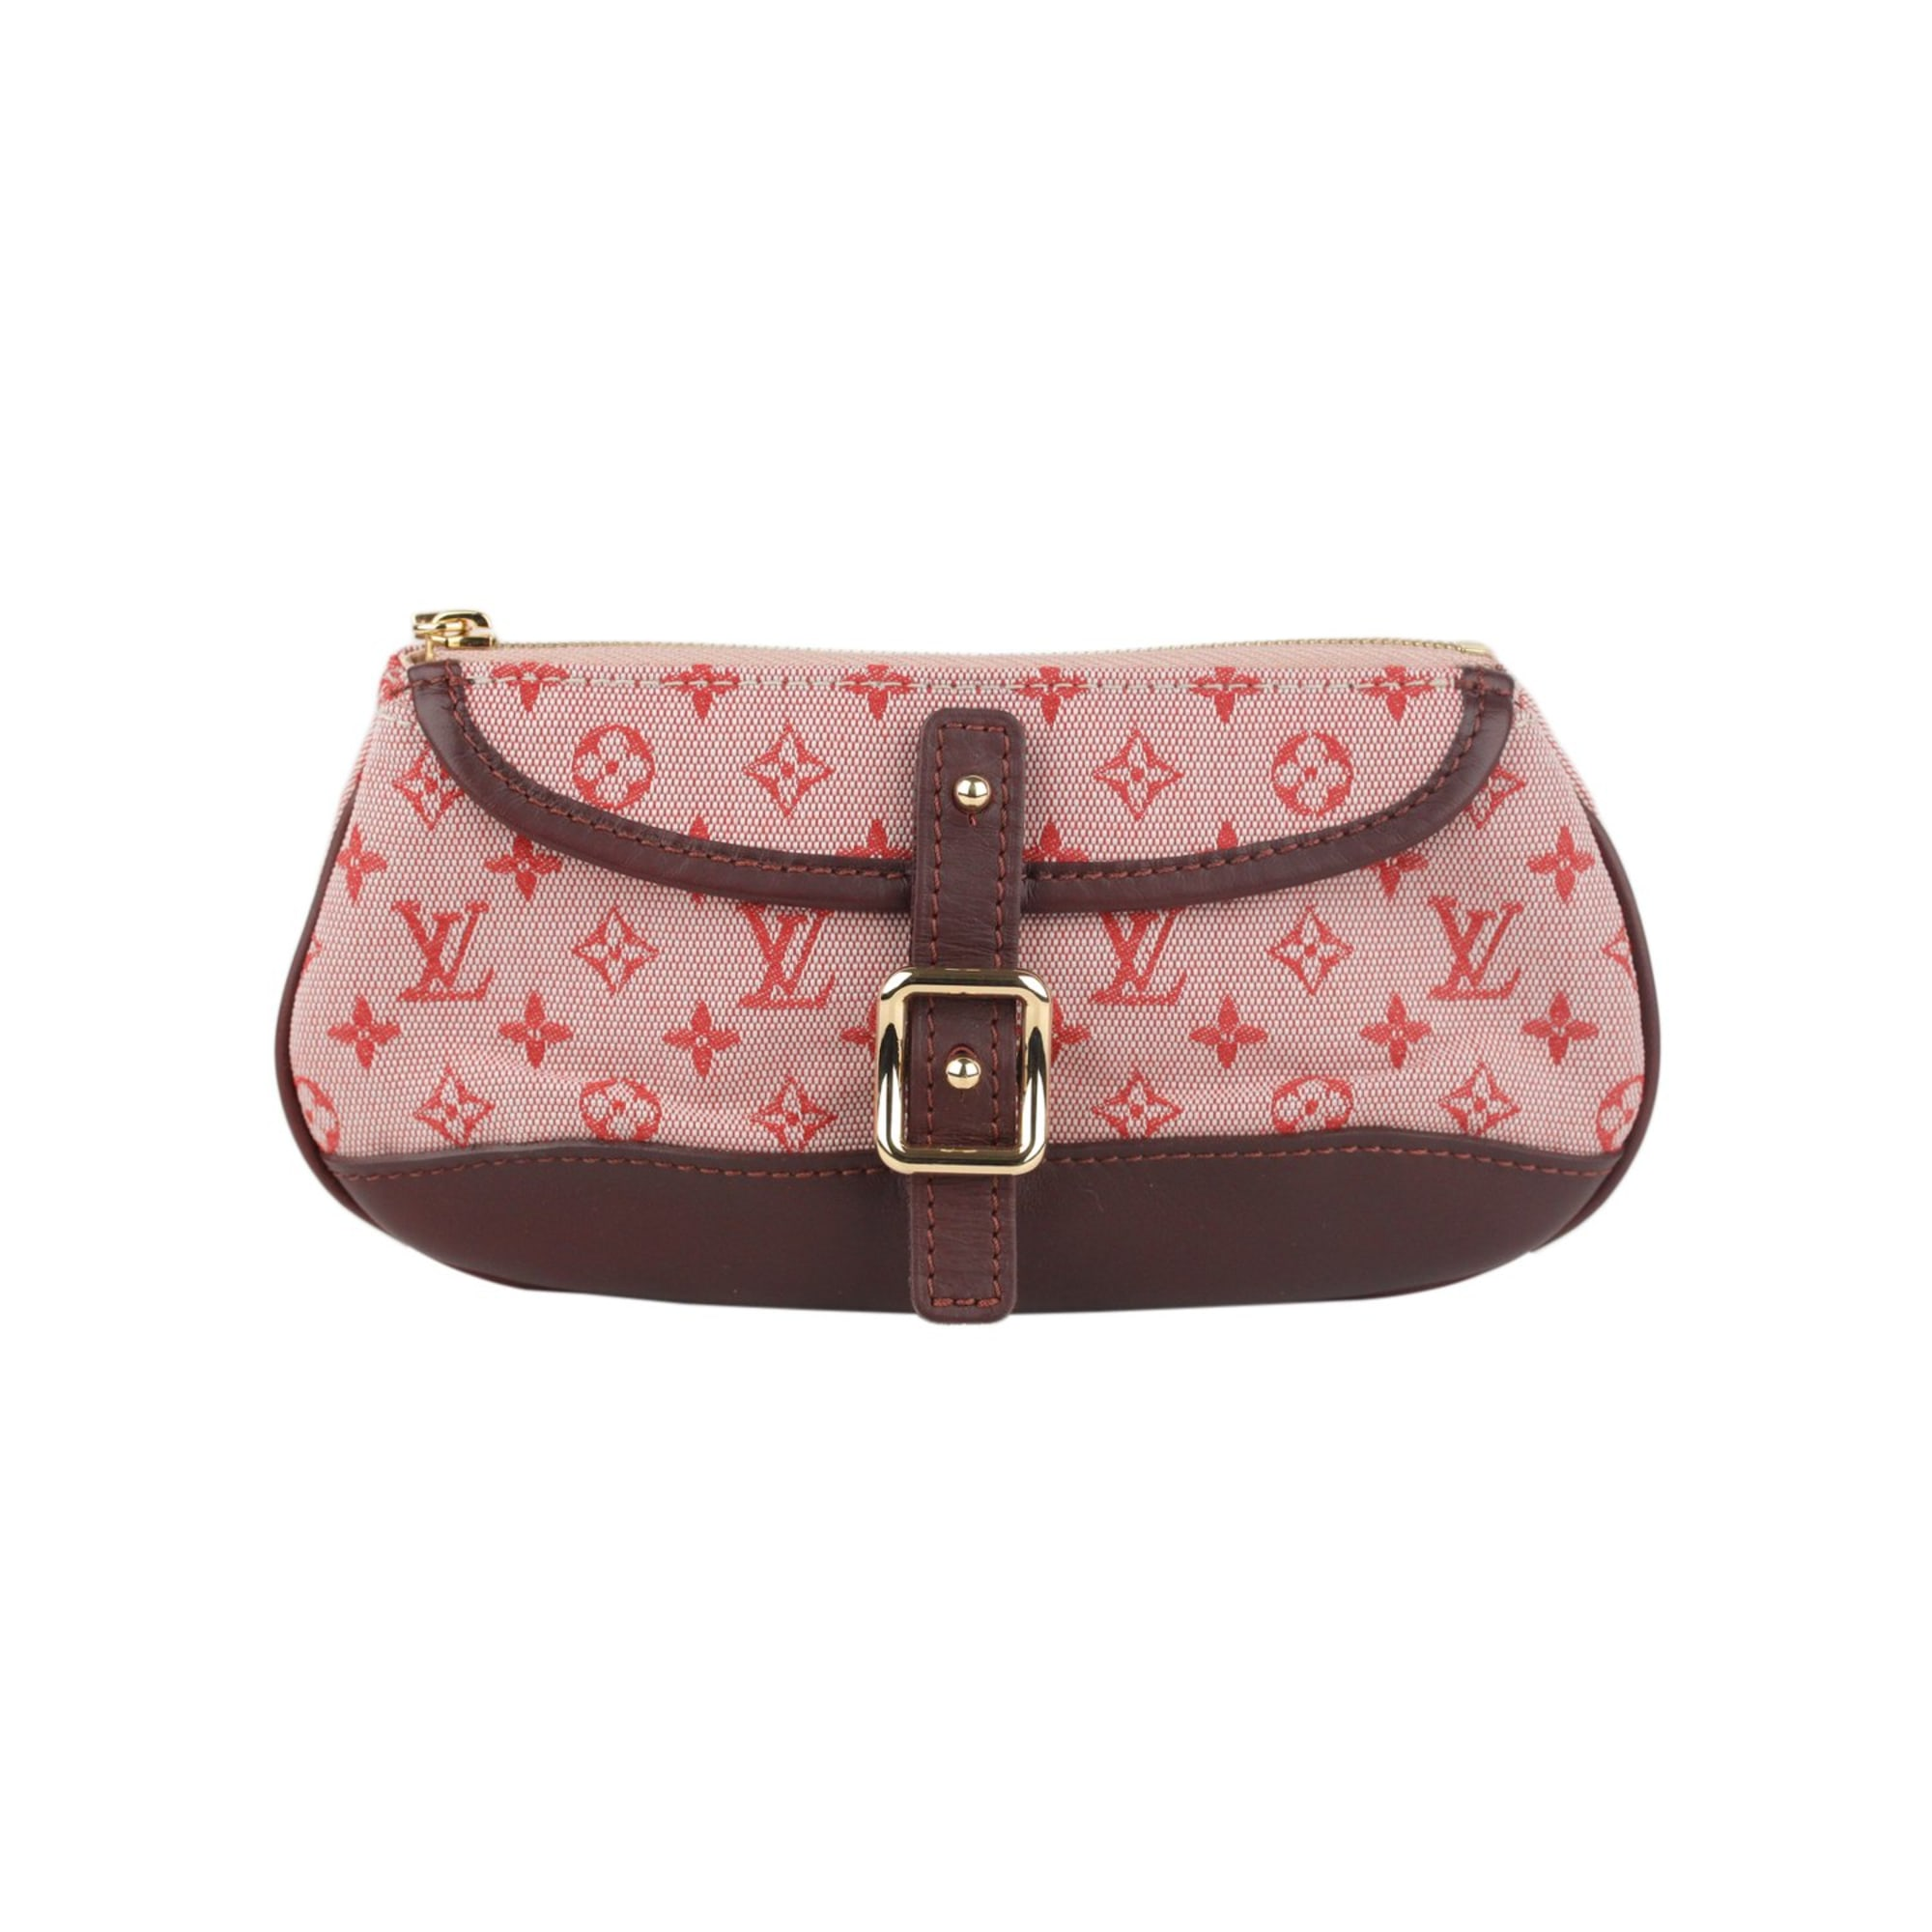 Non-Leather Clutch LOUIS VUITTON Red, burgundy